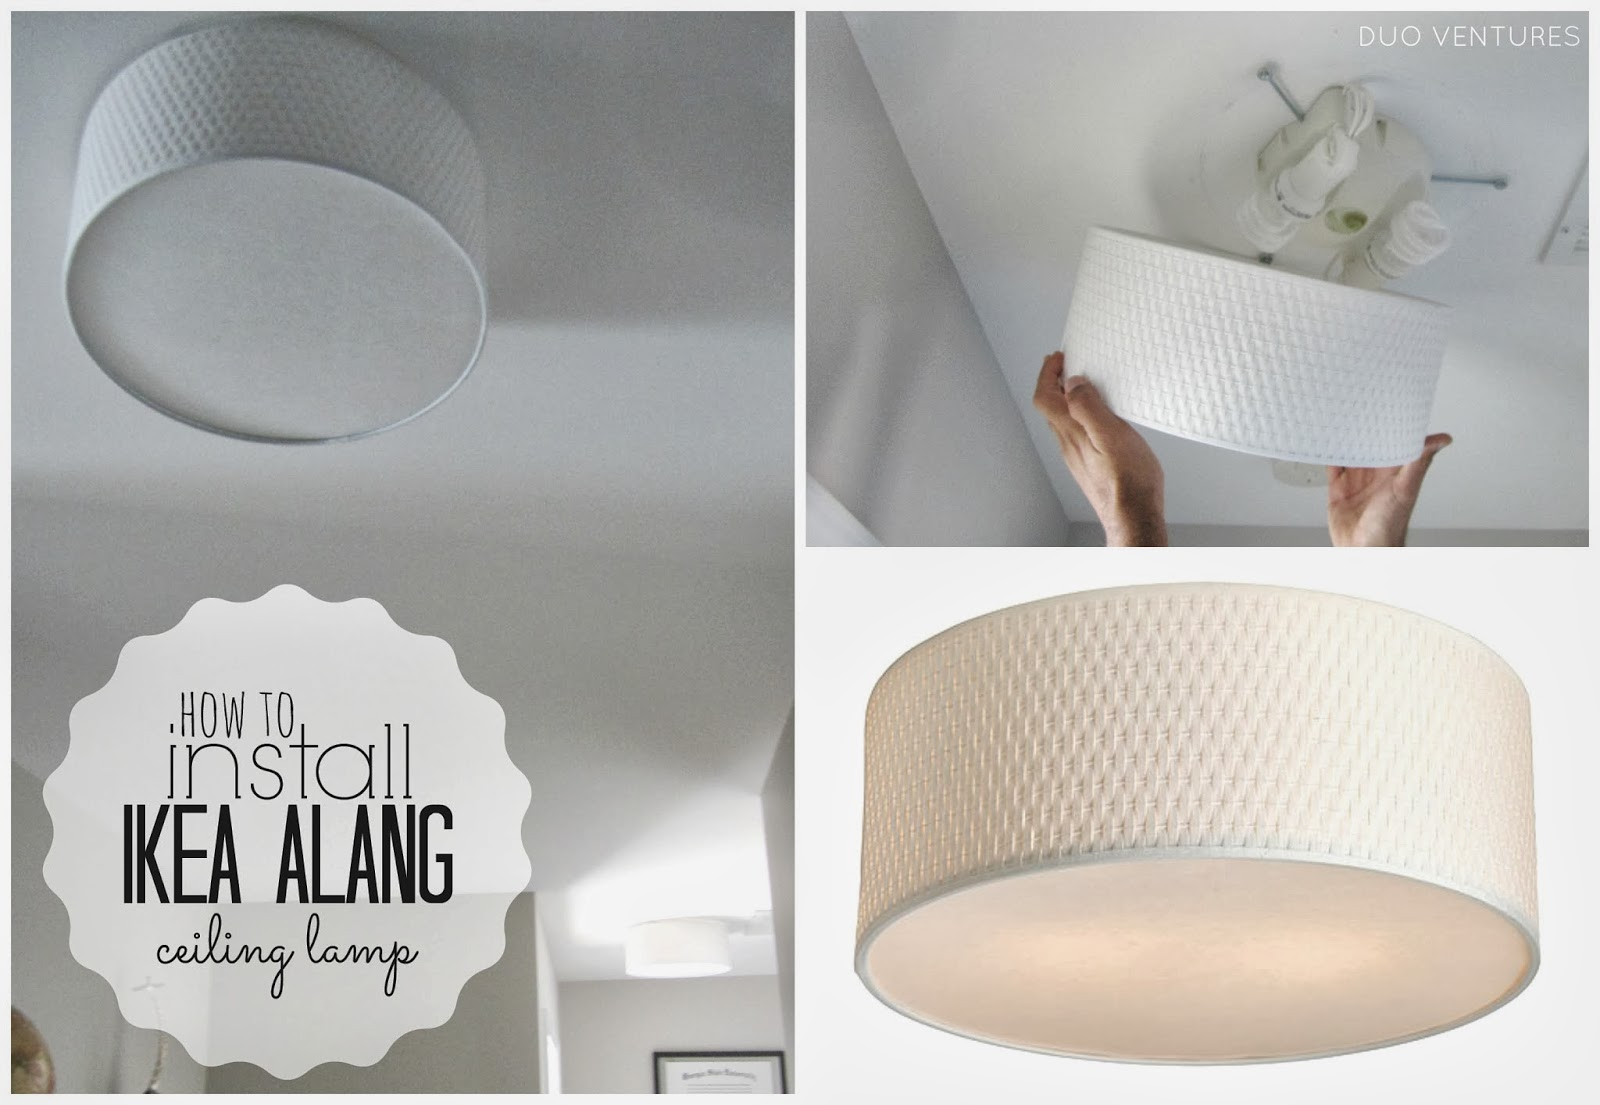 Ikea Patrull Klämma Barngrind ~ Duo Ventures How to Install IKEA ALANG Ceiling Lamp